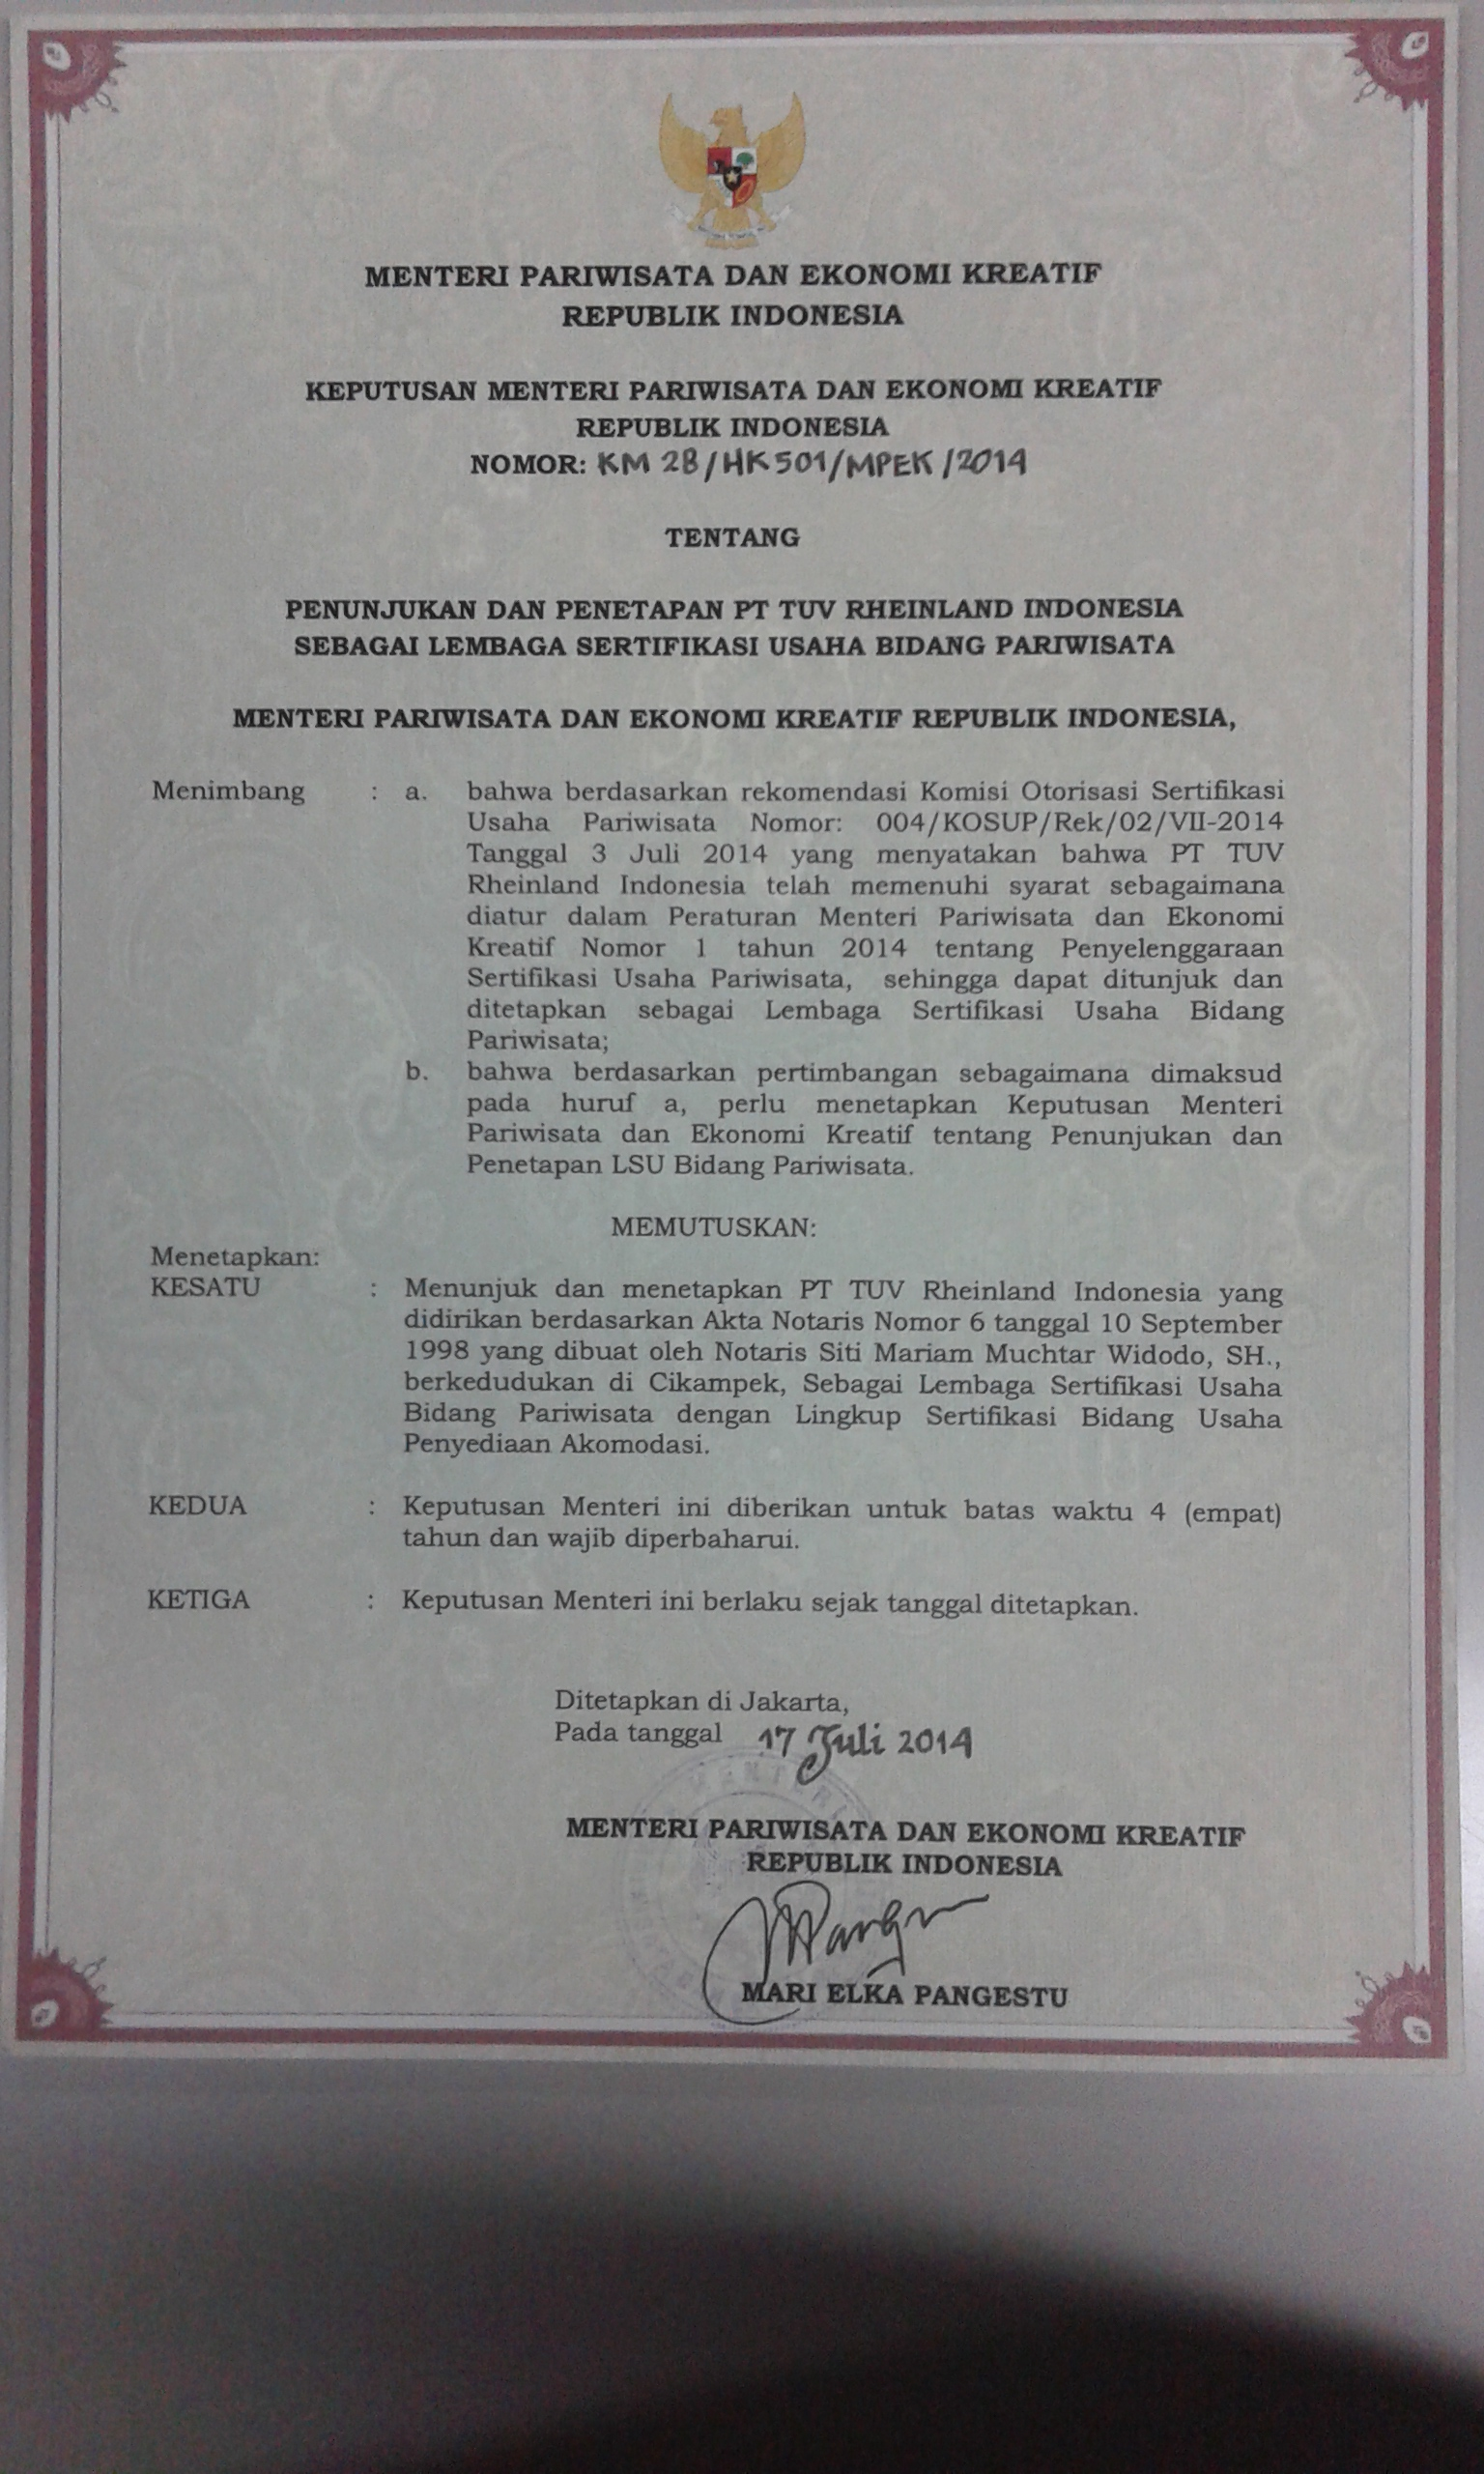 Pt tuv rheinland indonesia is a recognized certification body for certificate of pt tuv rheinland indonesia as certification body of tourism industry jpg 127 mb 1betcityfo Image collections